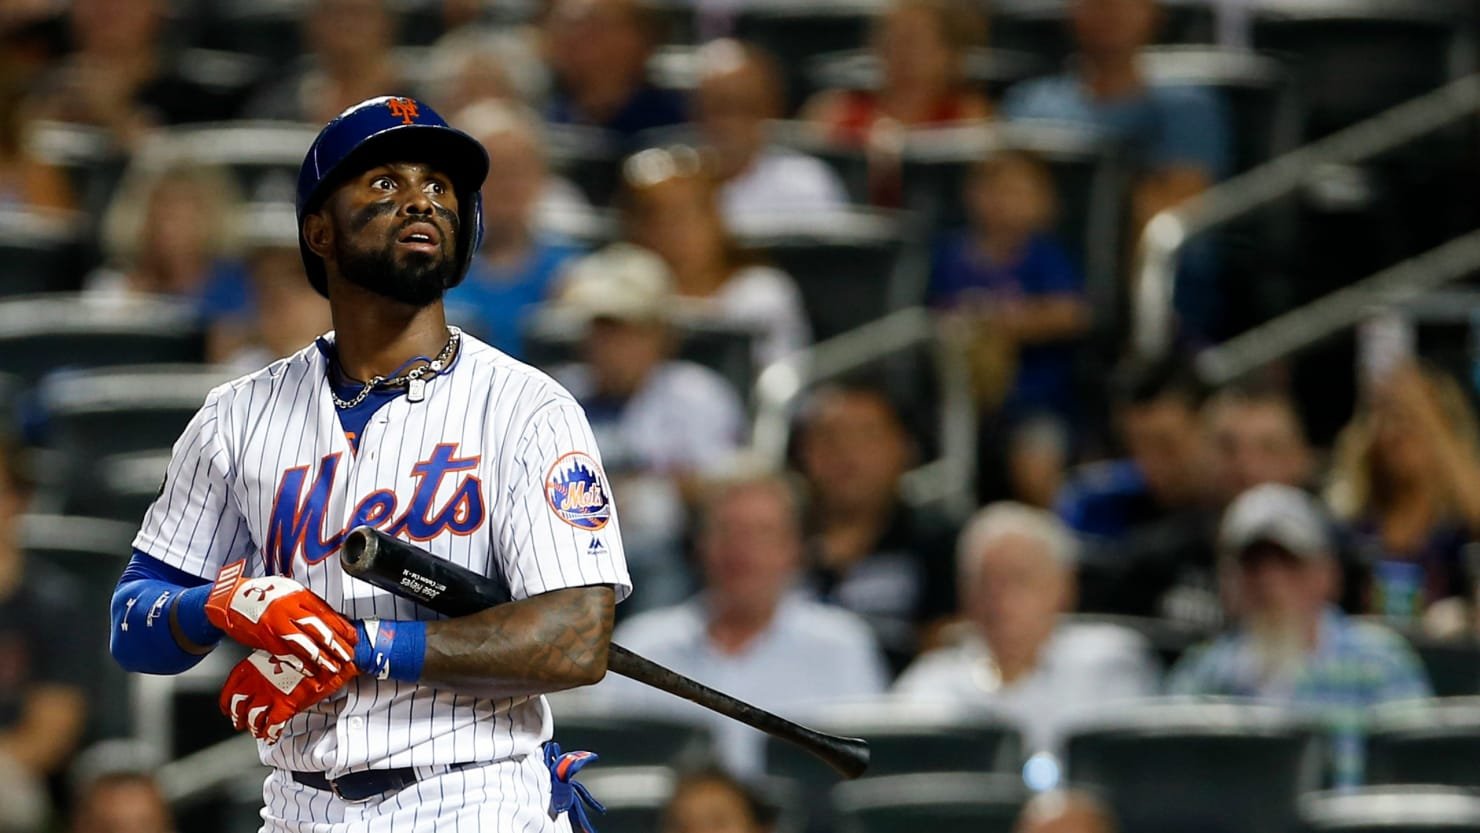 Alleged Domestic Abuser Jose Reyes Gets Most Votes for MLB 'Man of the Year' Award